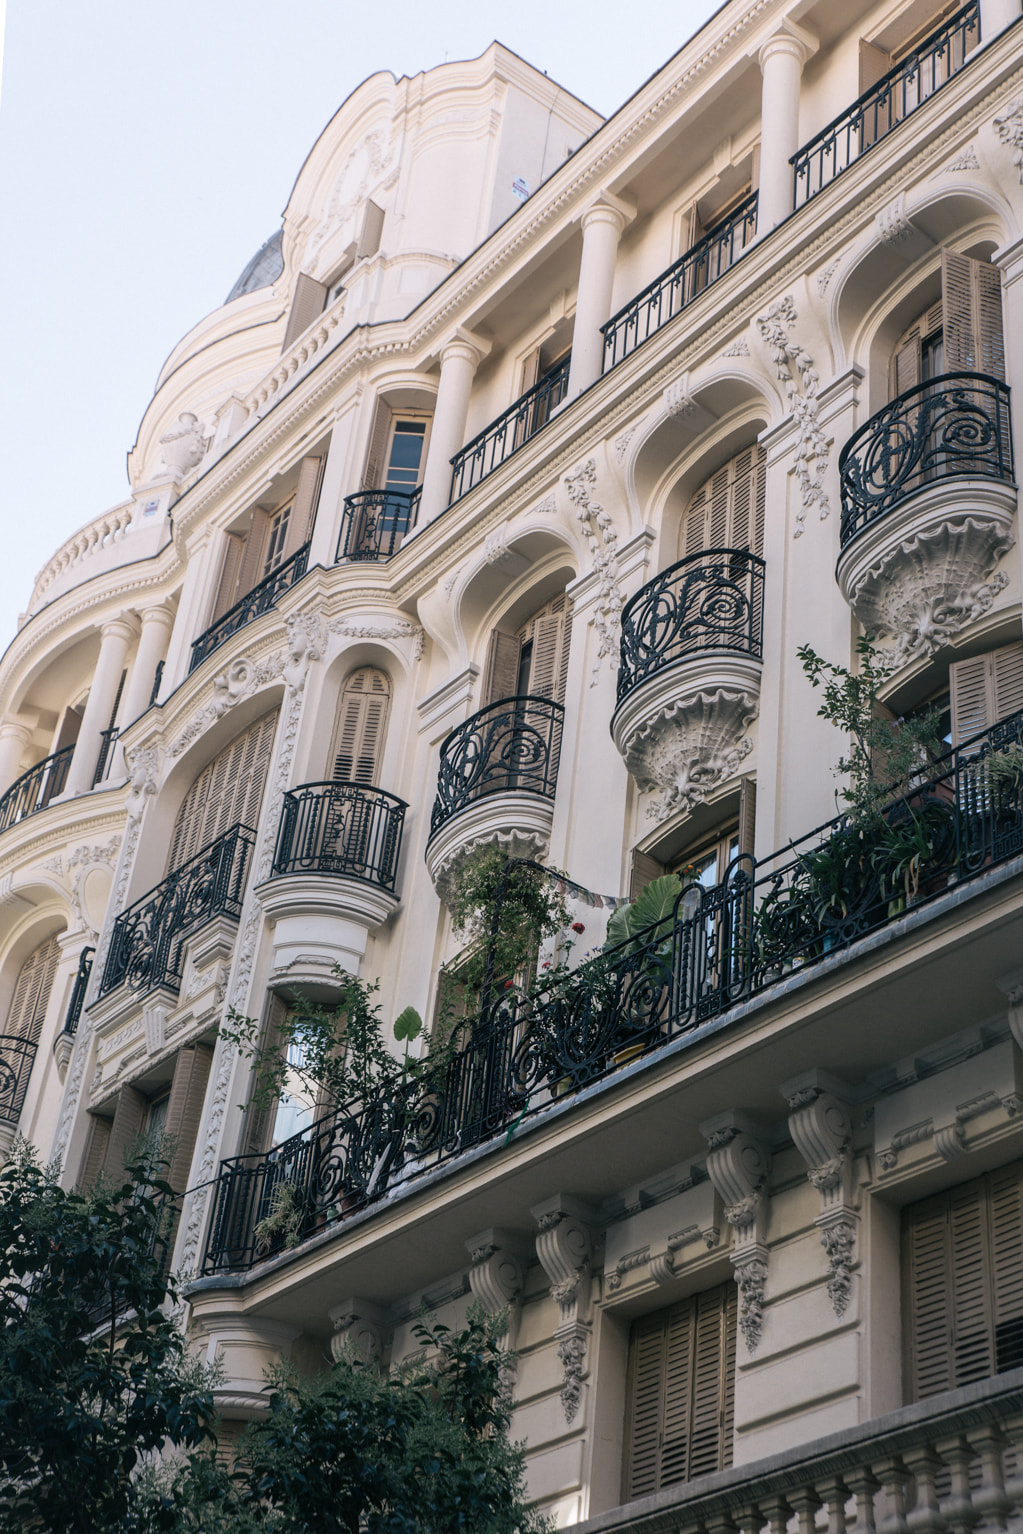 Visiting Madrid, Spain by The Belle Blog